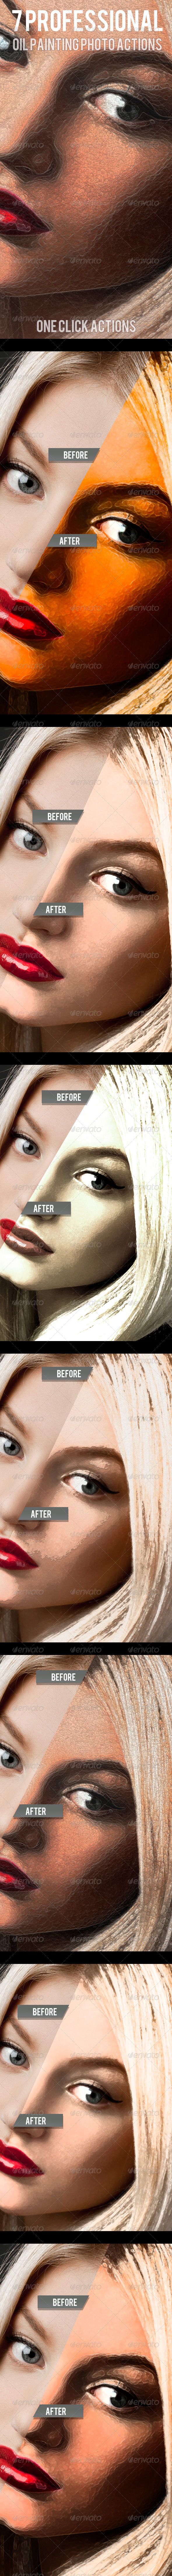 GraphicRiver 7 Oil Paint Photo Actions 7059210